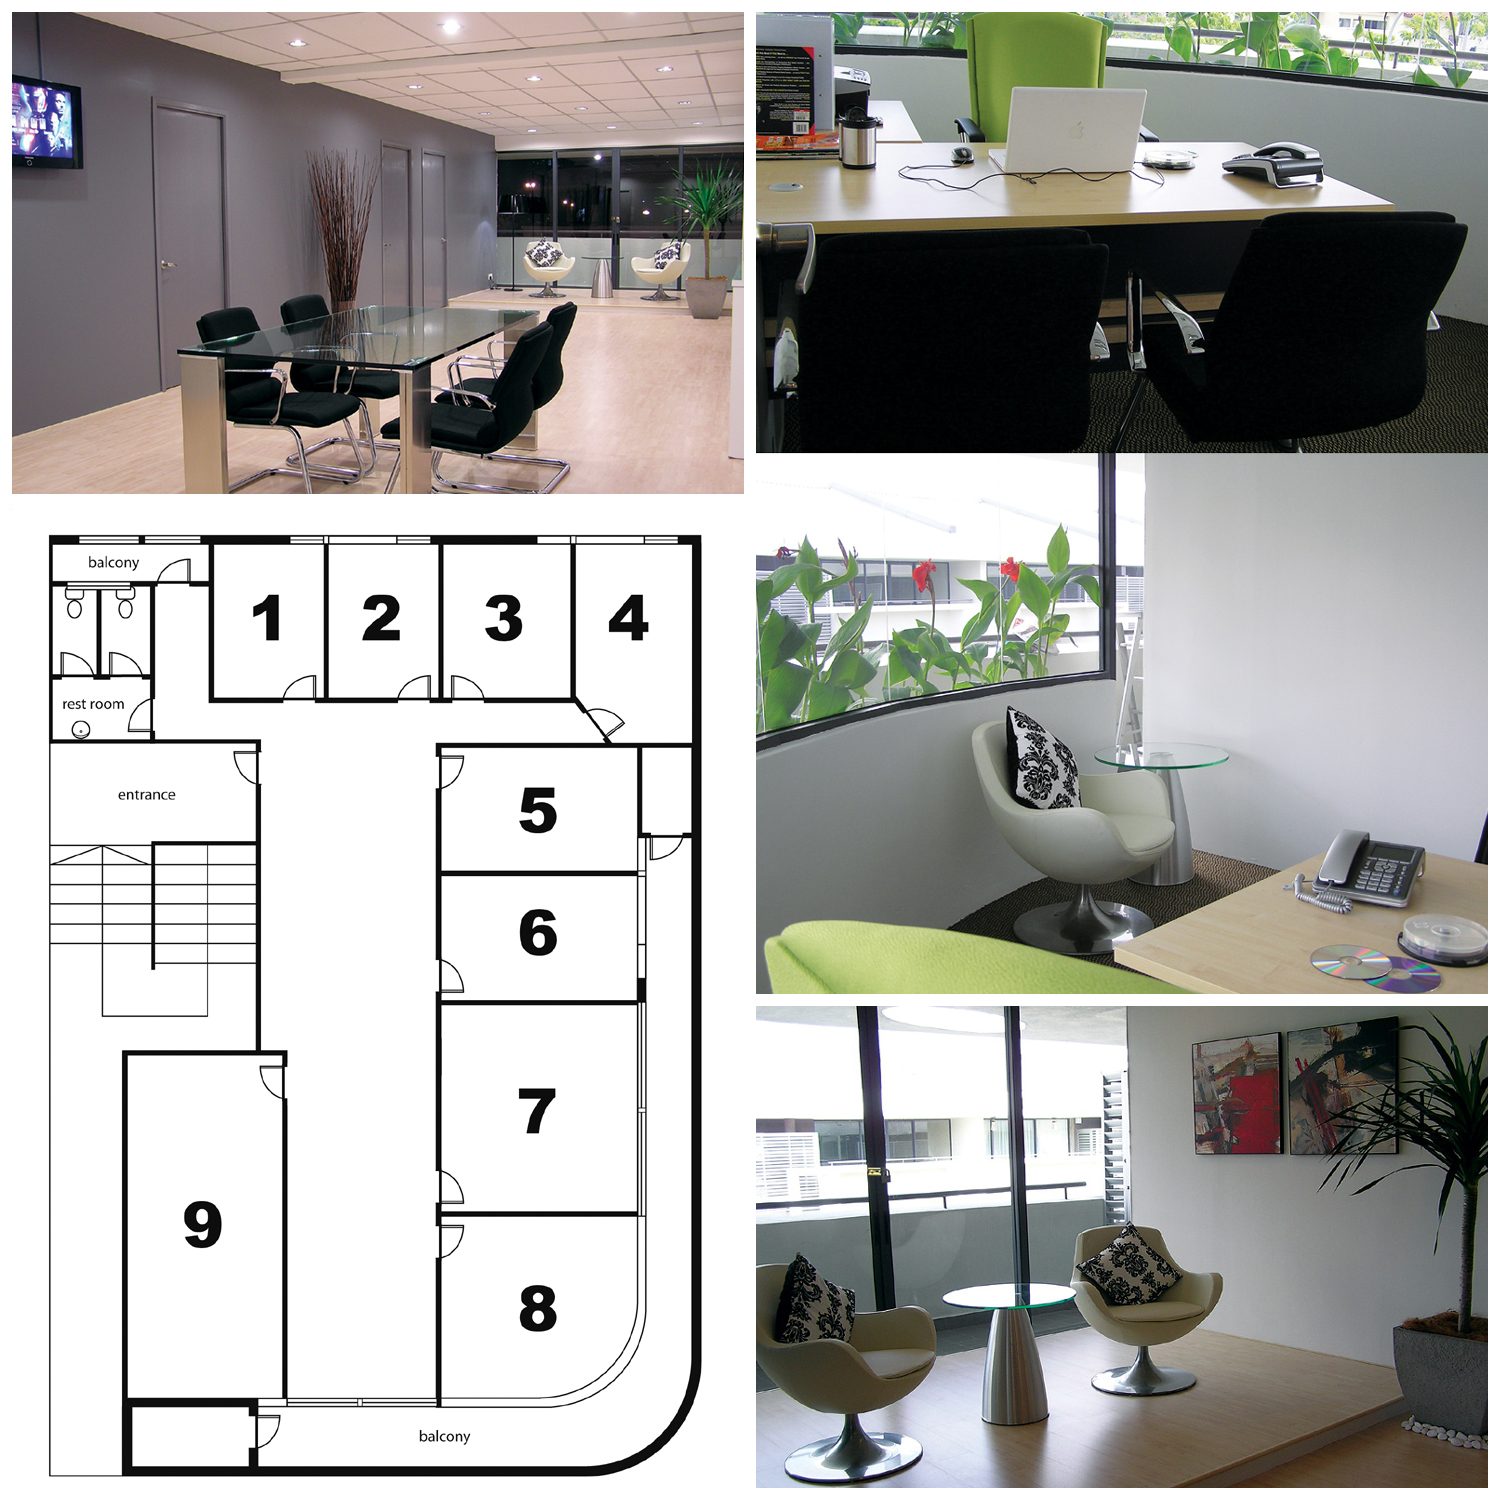 Commercial shared office work space for rent in kuala lumpur room 8 small office shared - Shared office space for rent ...